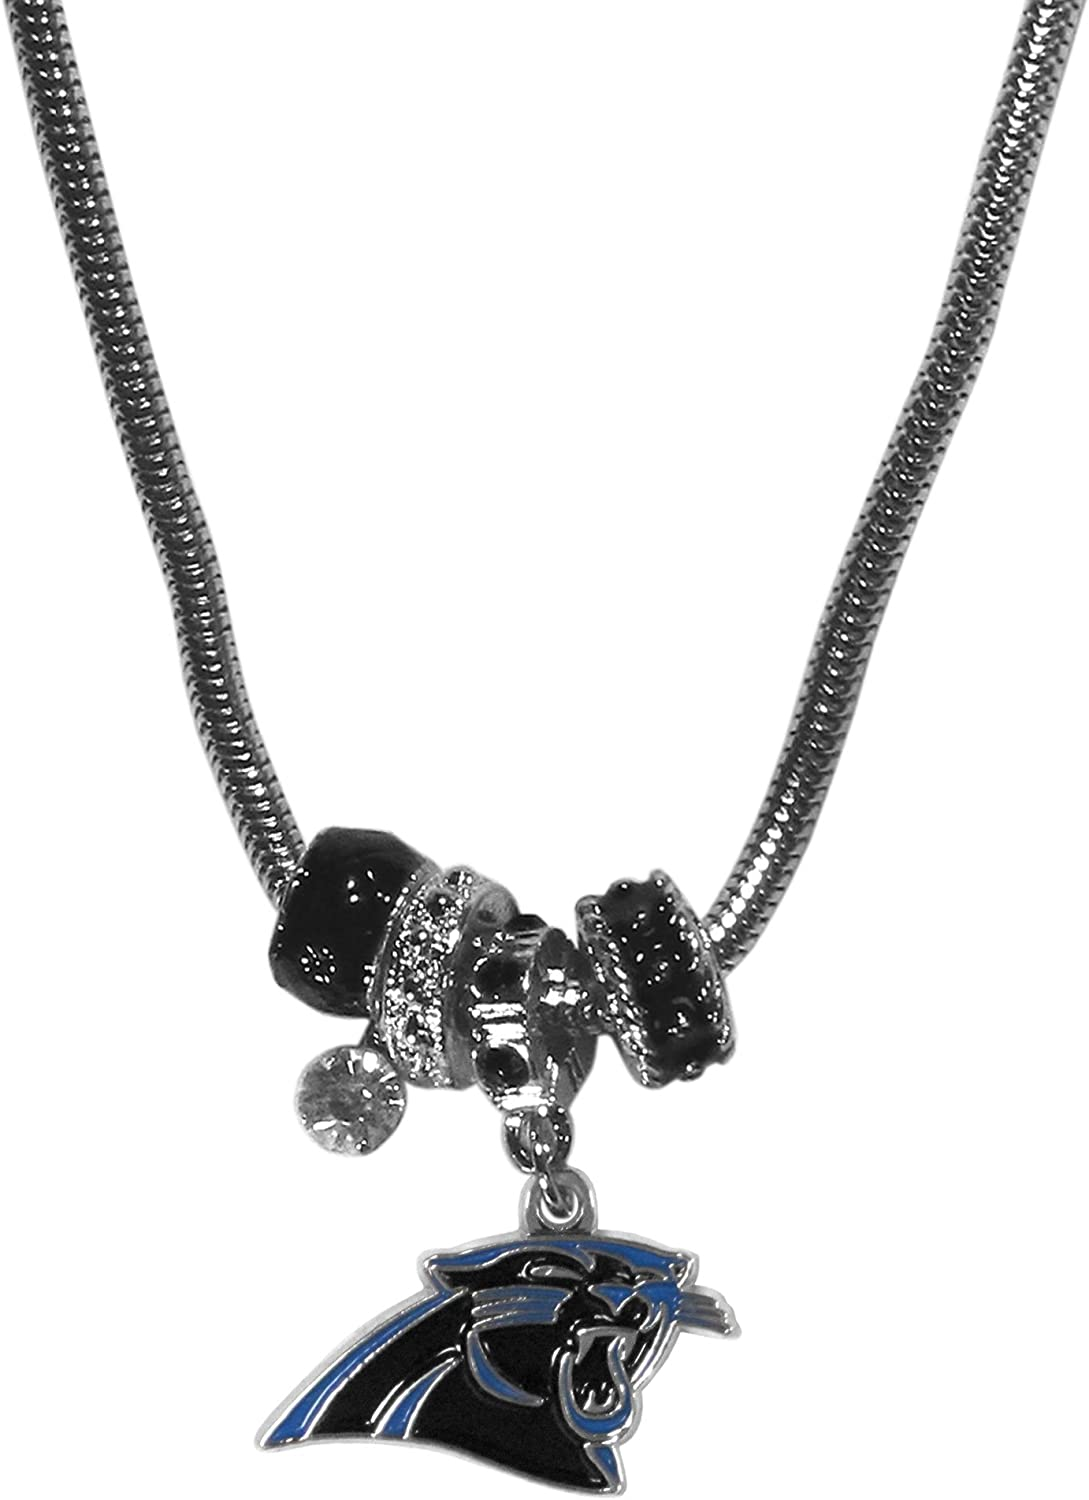 NFL Womens Euro Bead Jewelry 3 piece Set